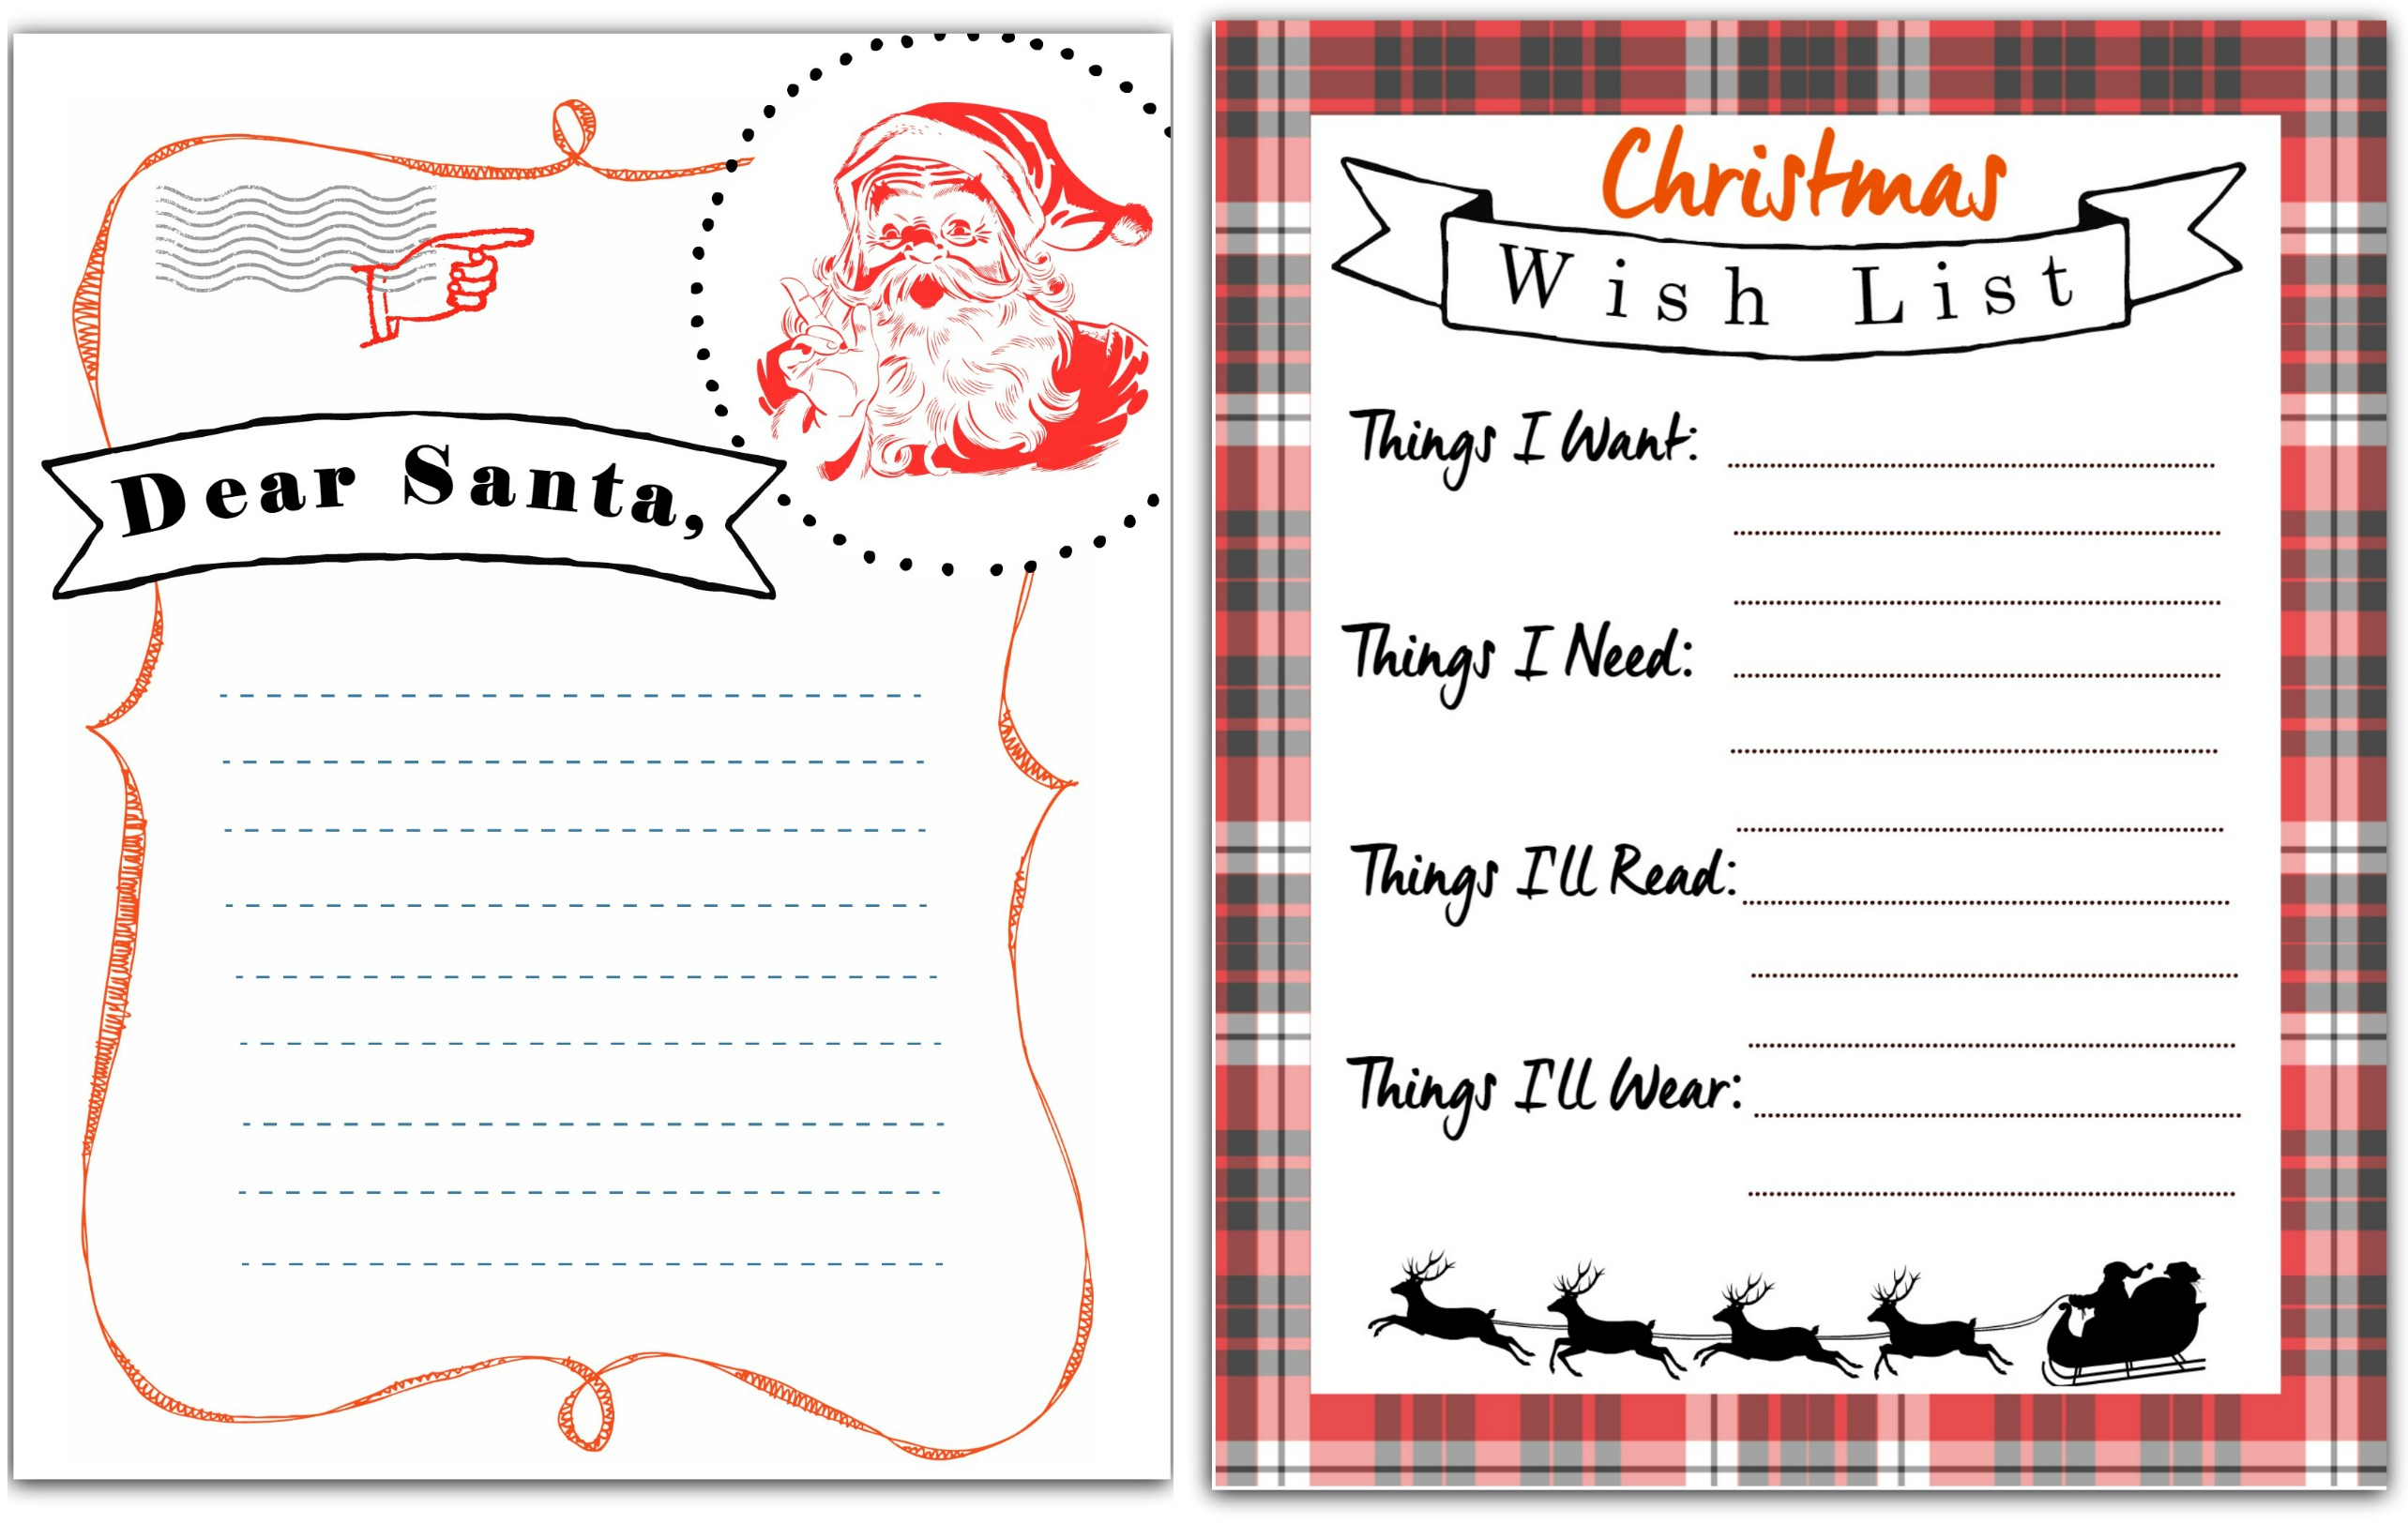 photograph about Santa Christmas List Printable referred to as No cost Printable Letter toward Santa Xmas Want Record - Hip2Conserve